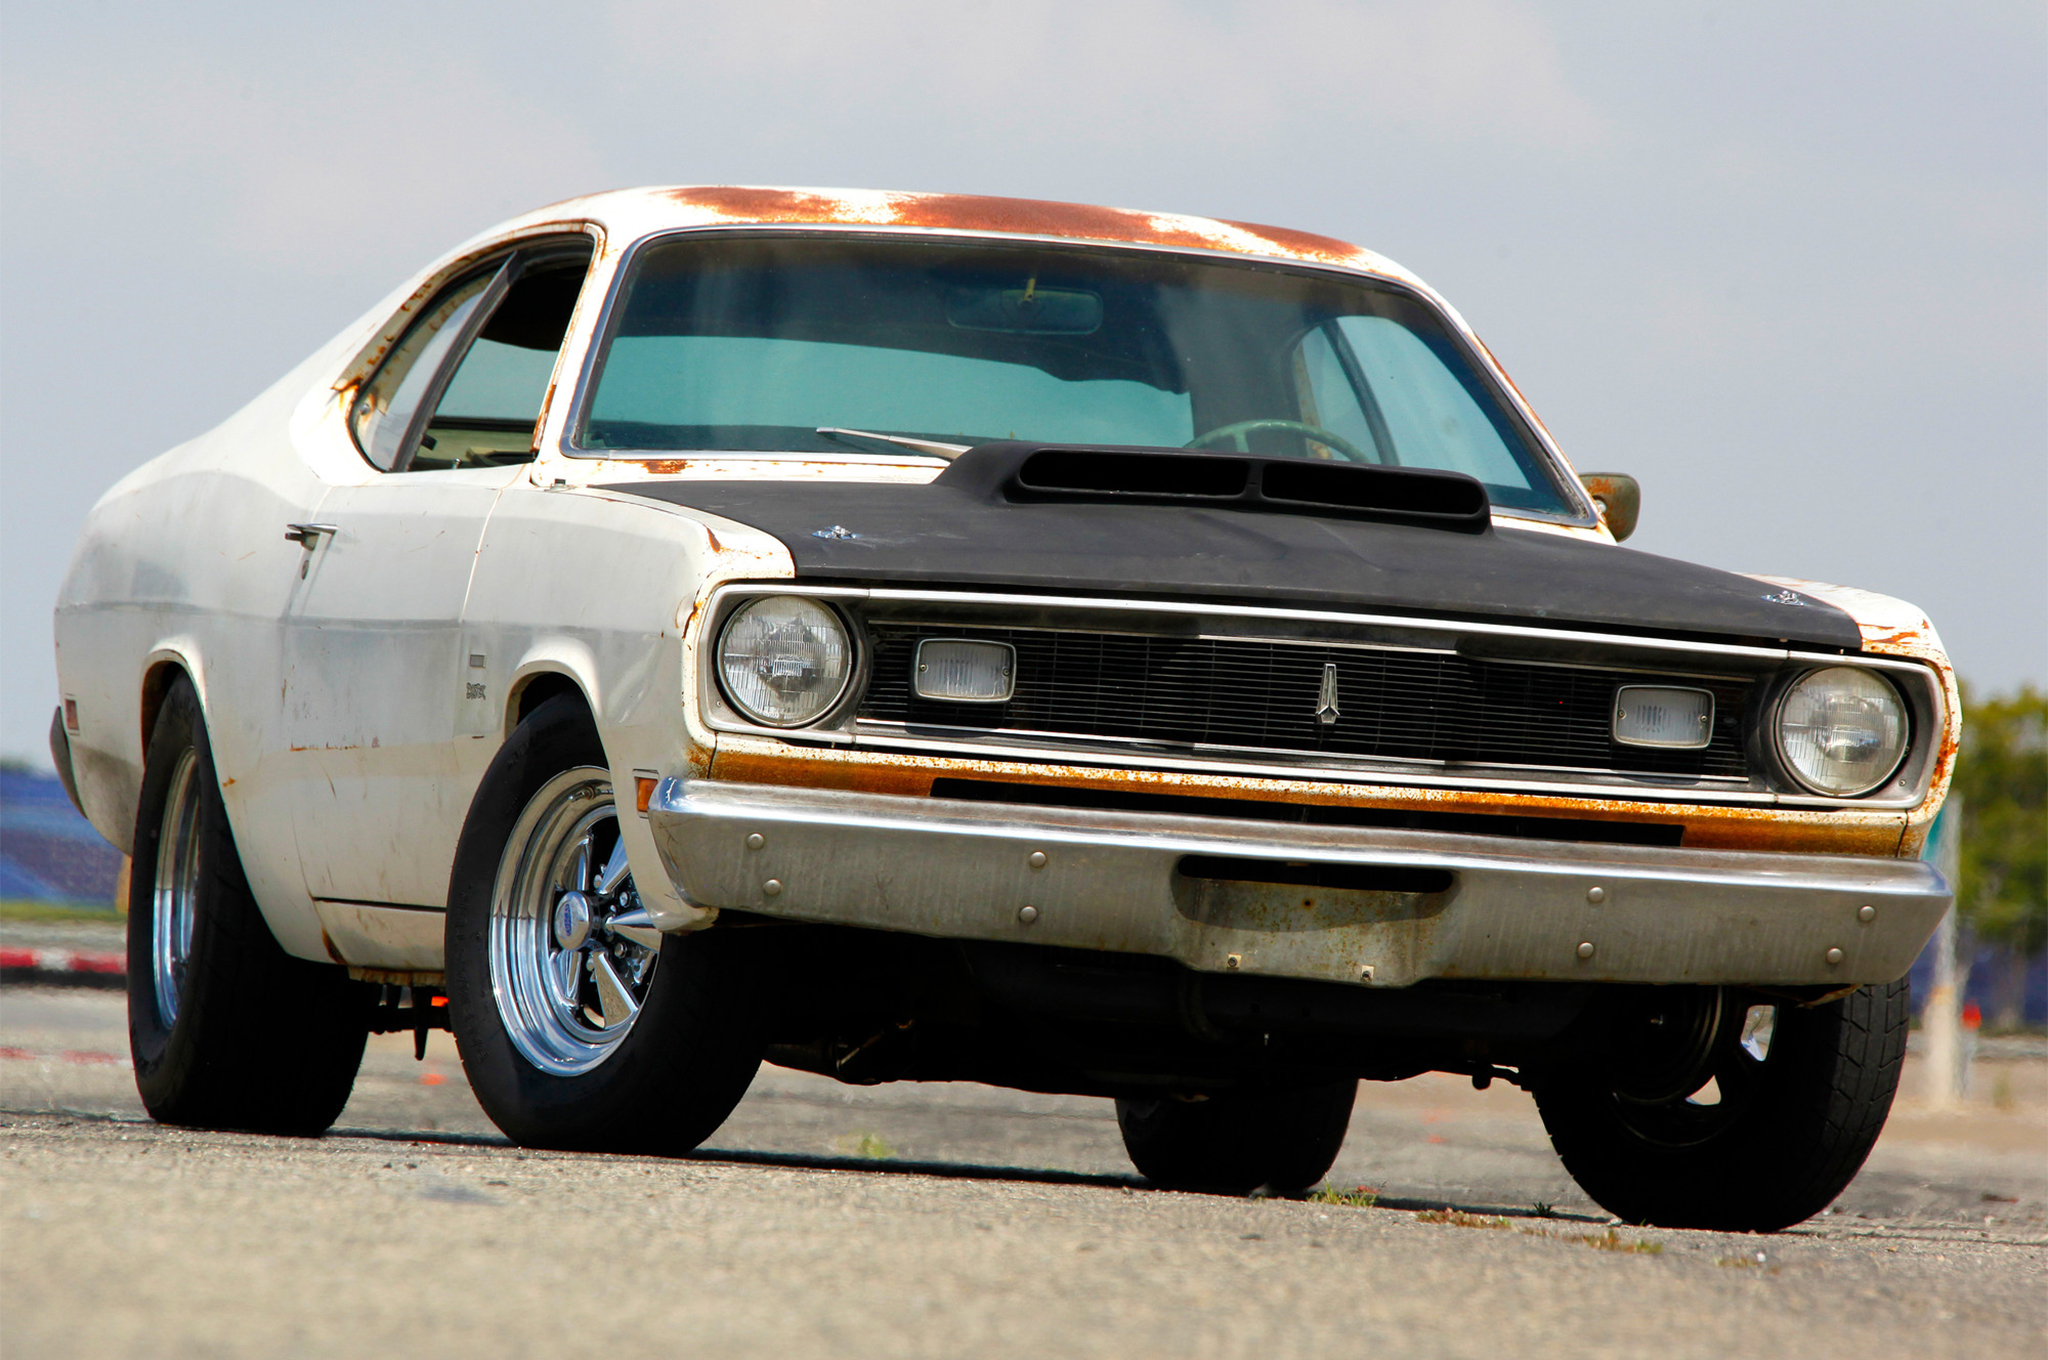 The Crop Duster is a 1970 Plymouth, the first model year of the Valiant Duster. Most of the paint is the original EW1-code Alpine White.